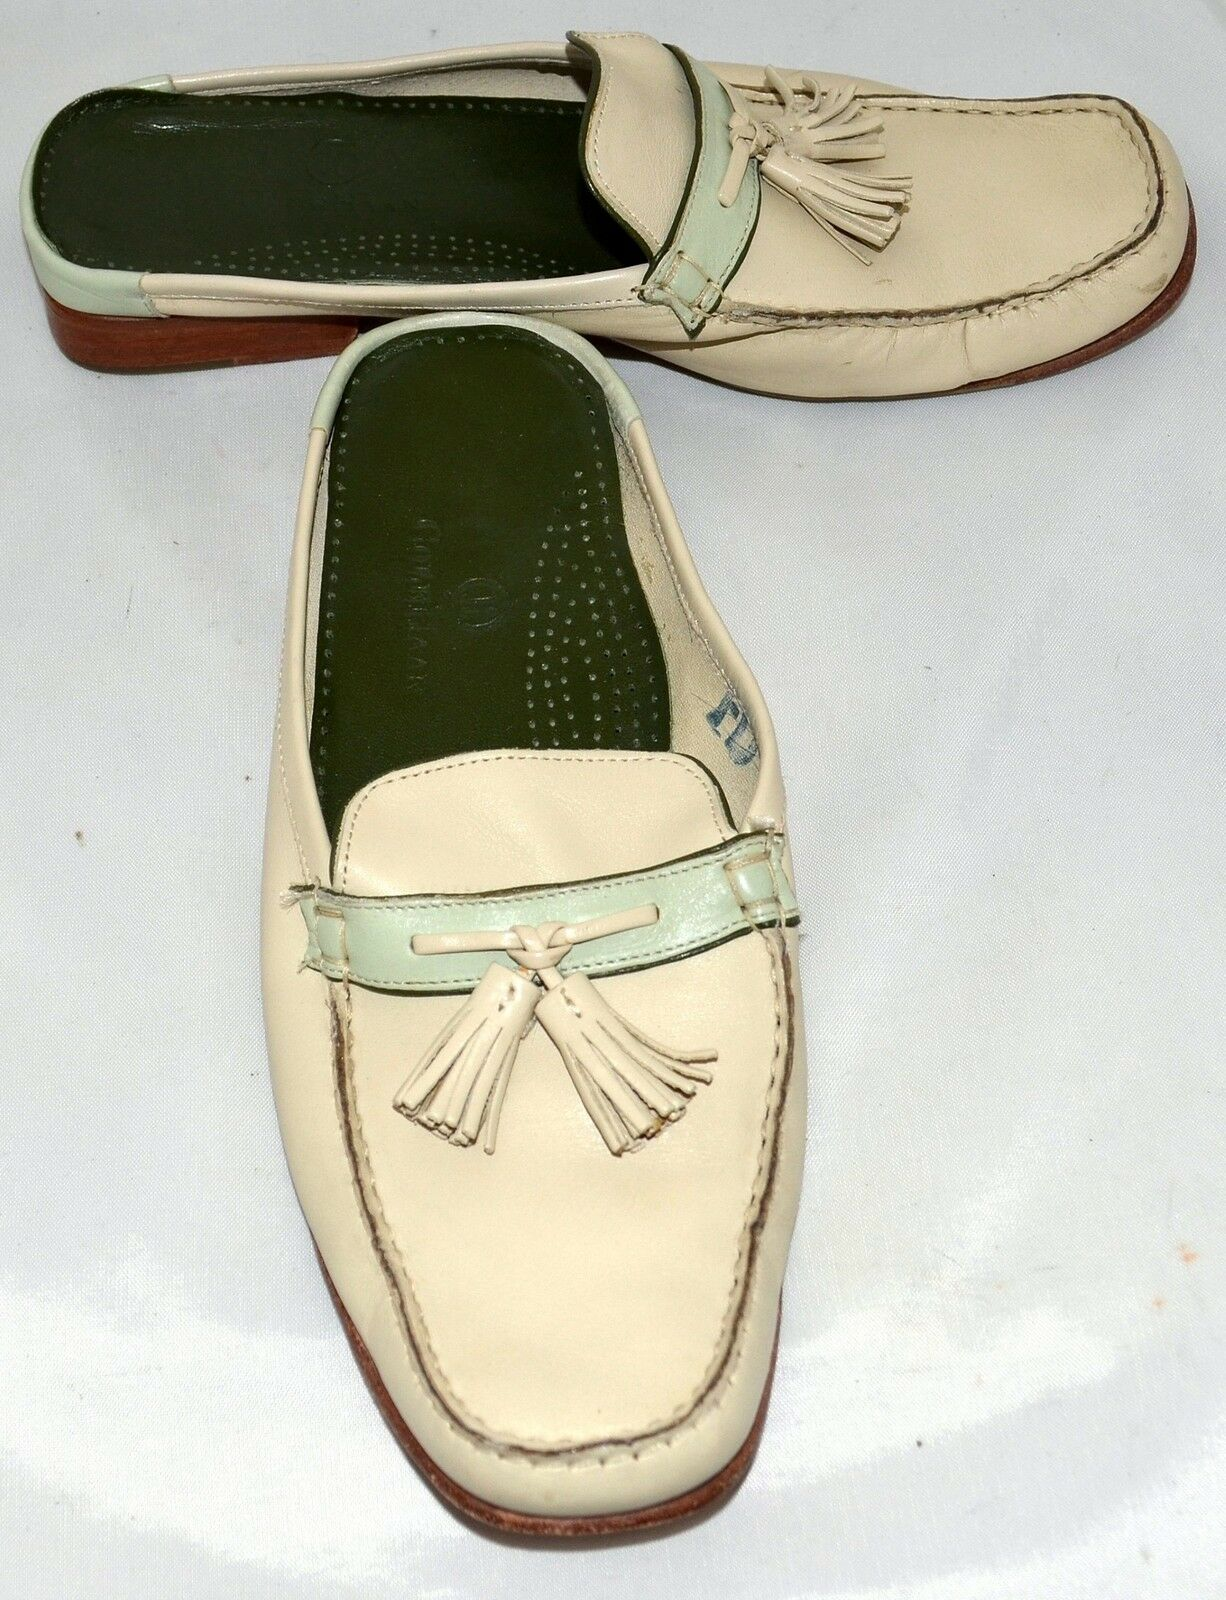 Cole Haan Cream Leather Comfort Slide Loafers with 2 Tassels Size 8.5 M